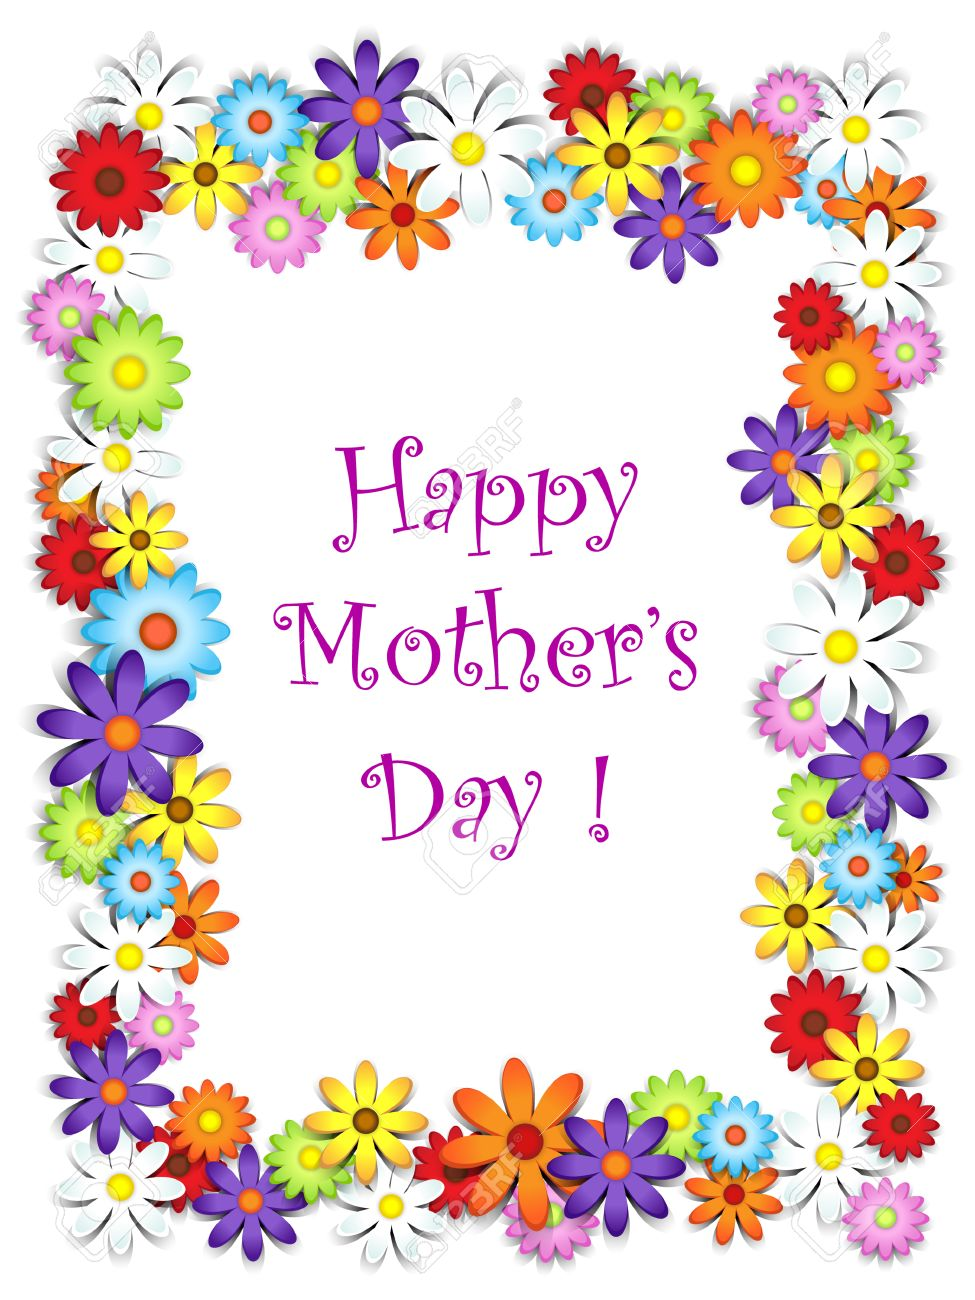 Flower Frame Happy Mothers Day Card Royalty Free Cliparts Vectors